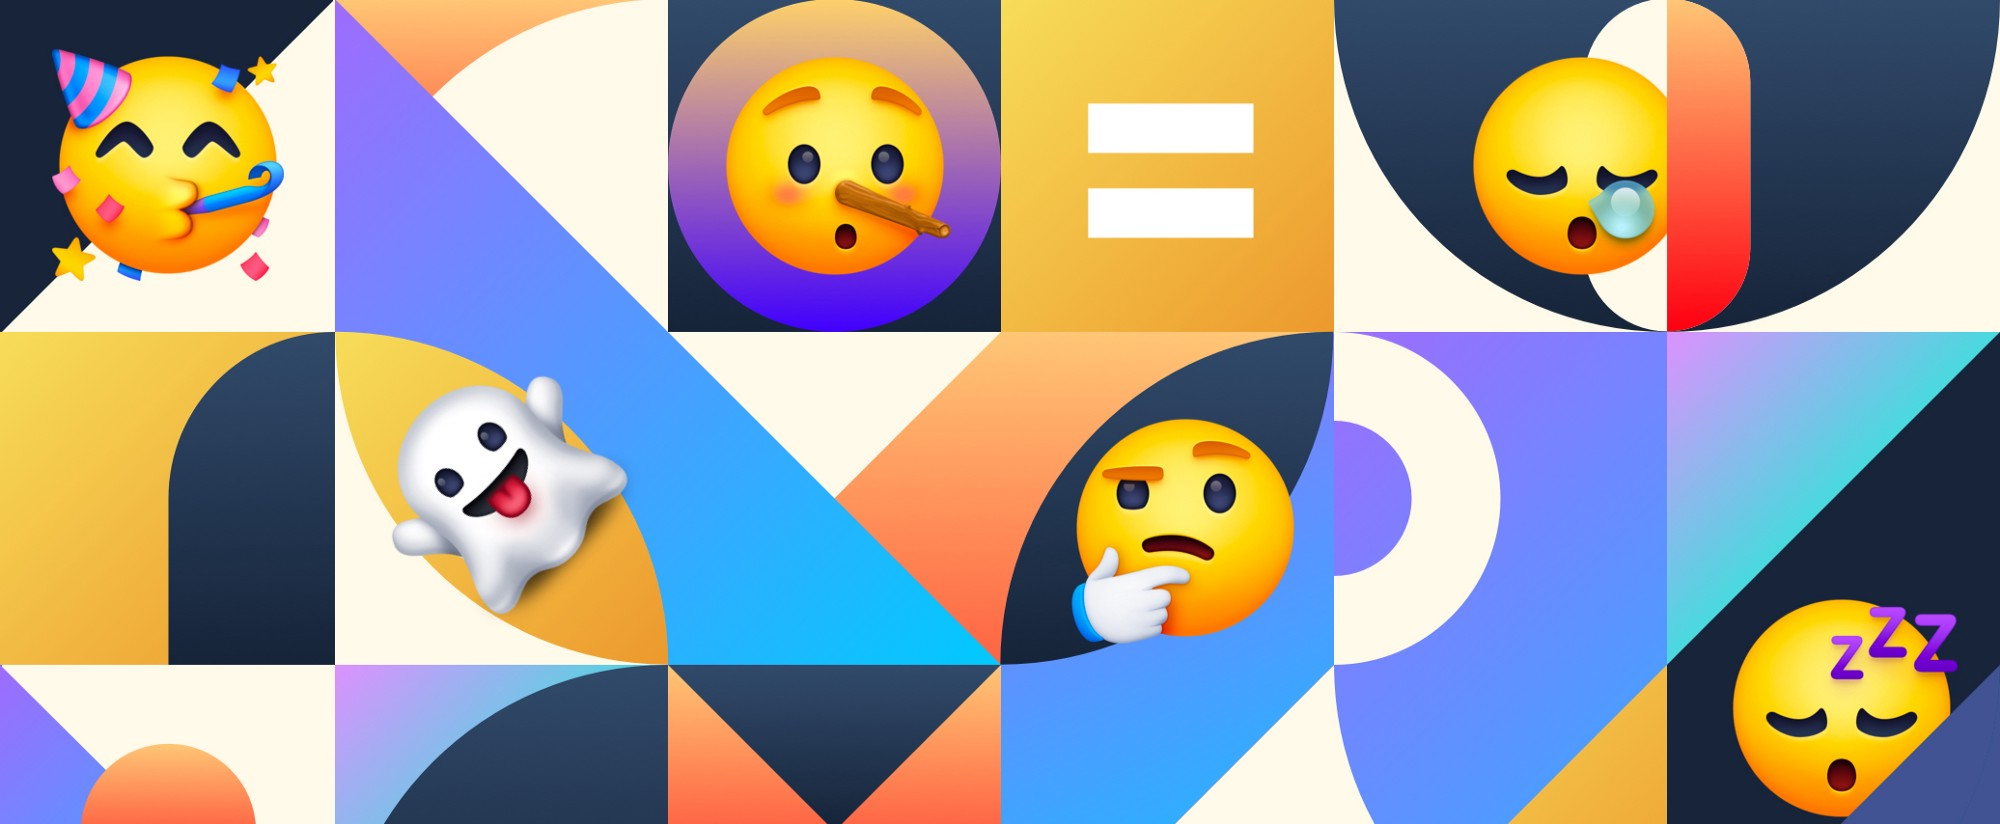 Cover image for the blog that has floating emojis on top of a multi colored abstract background